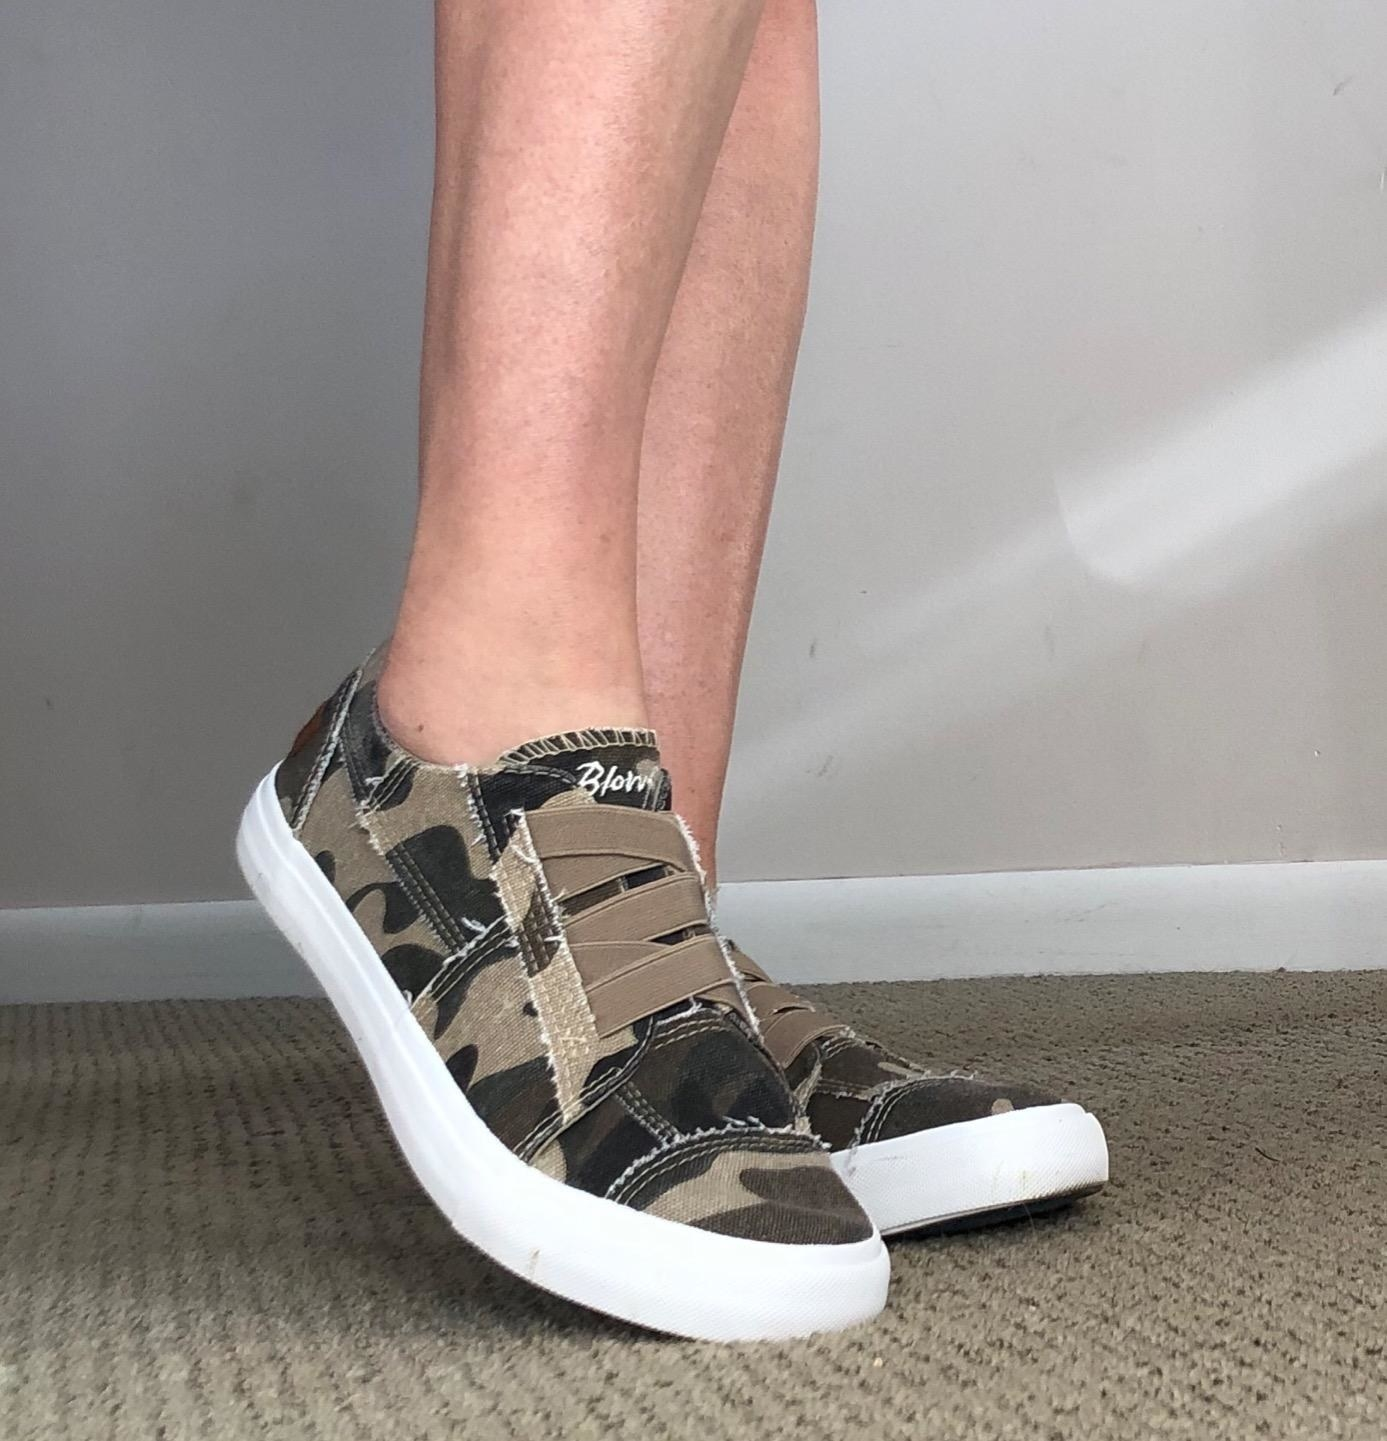 Reviewer wearing cmouflage shoes with white soles